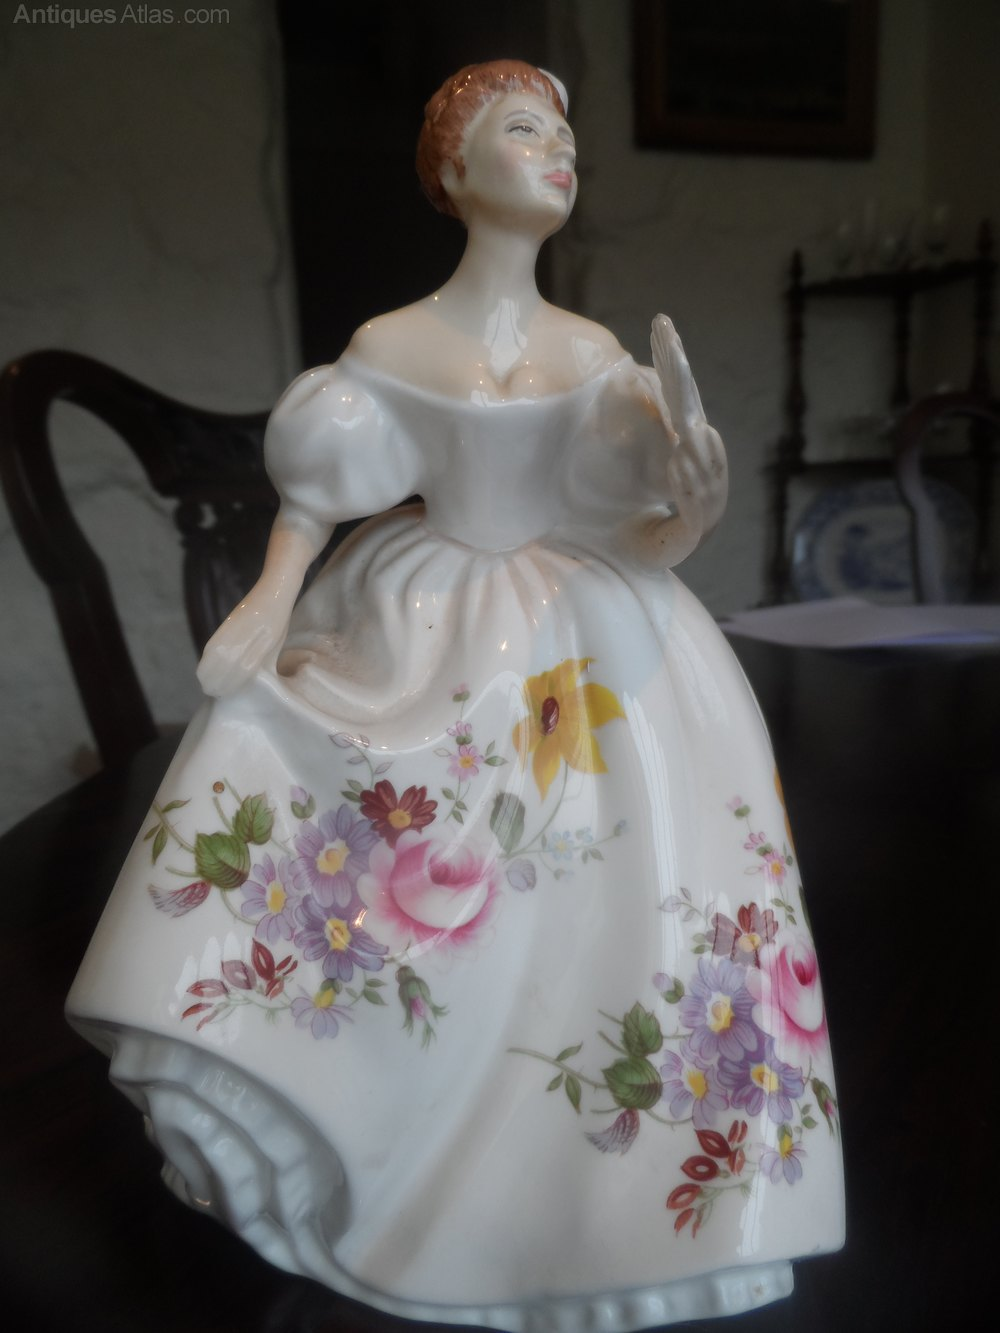 Dating royal doulton in Melbourne